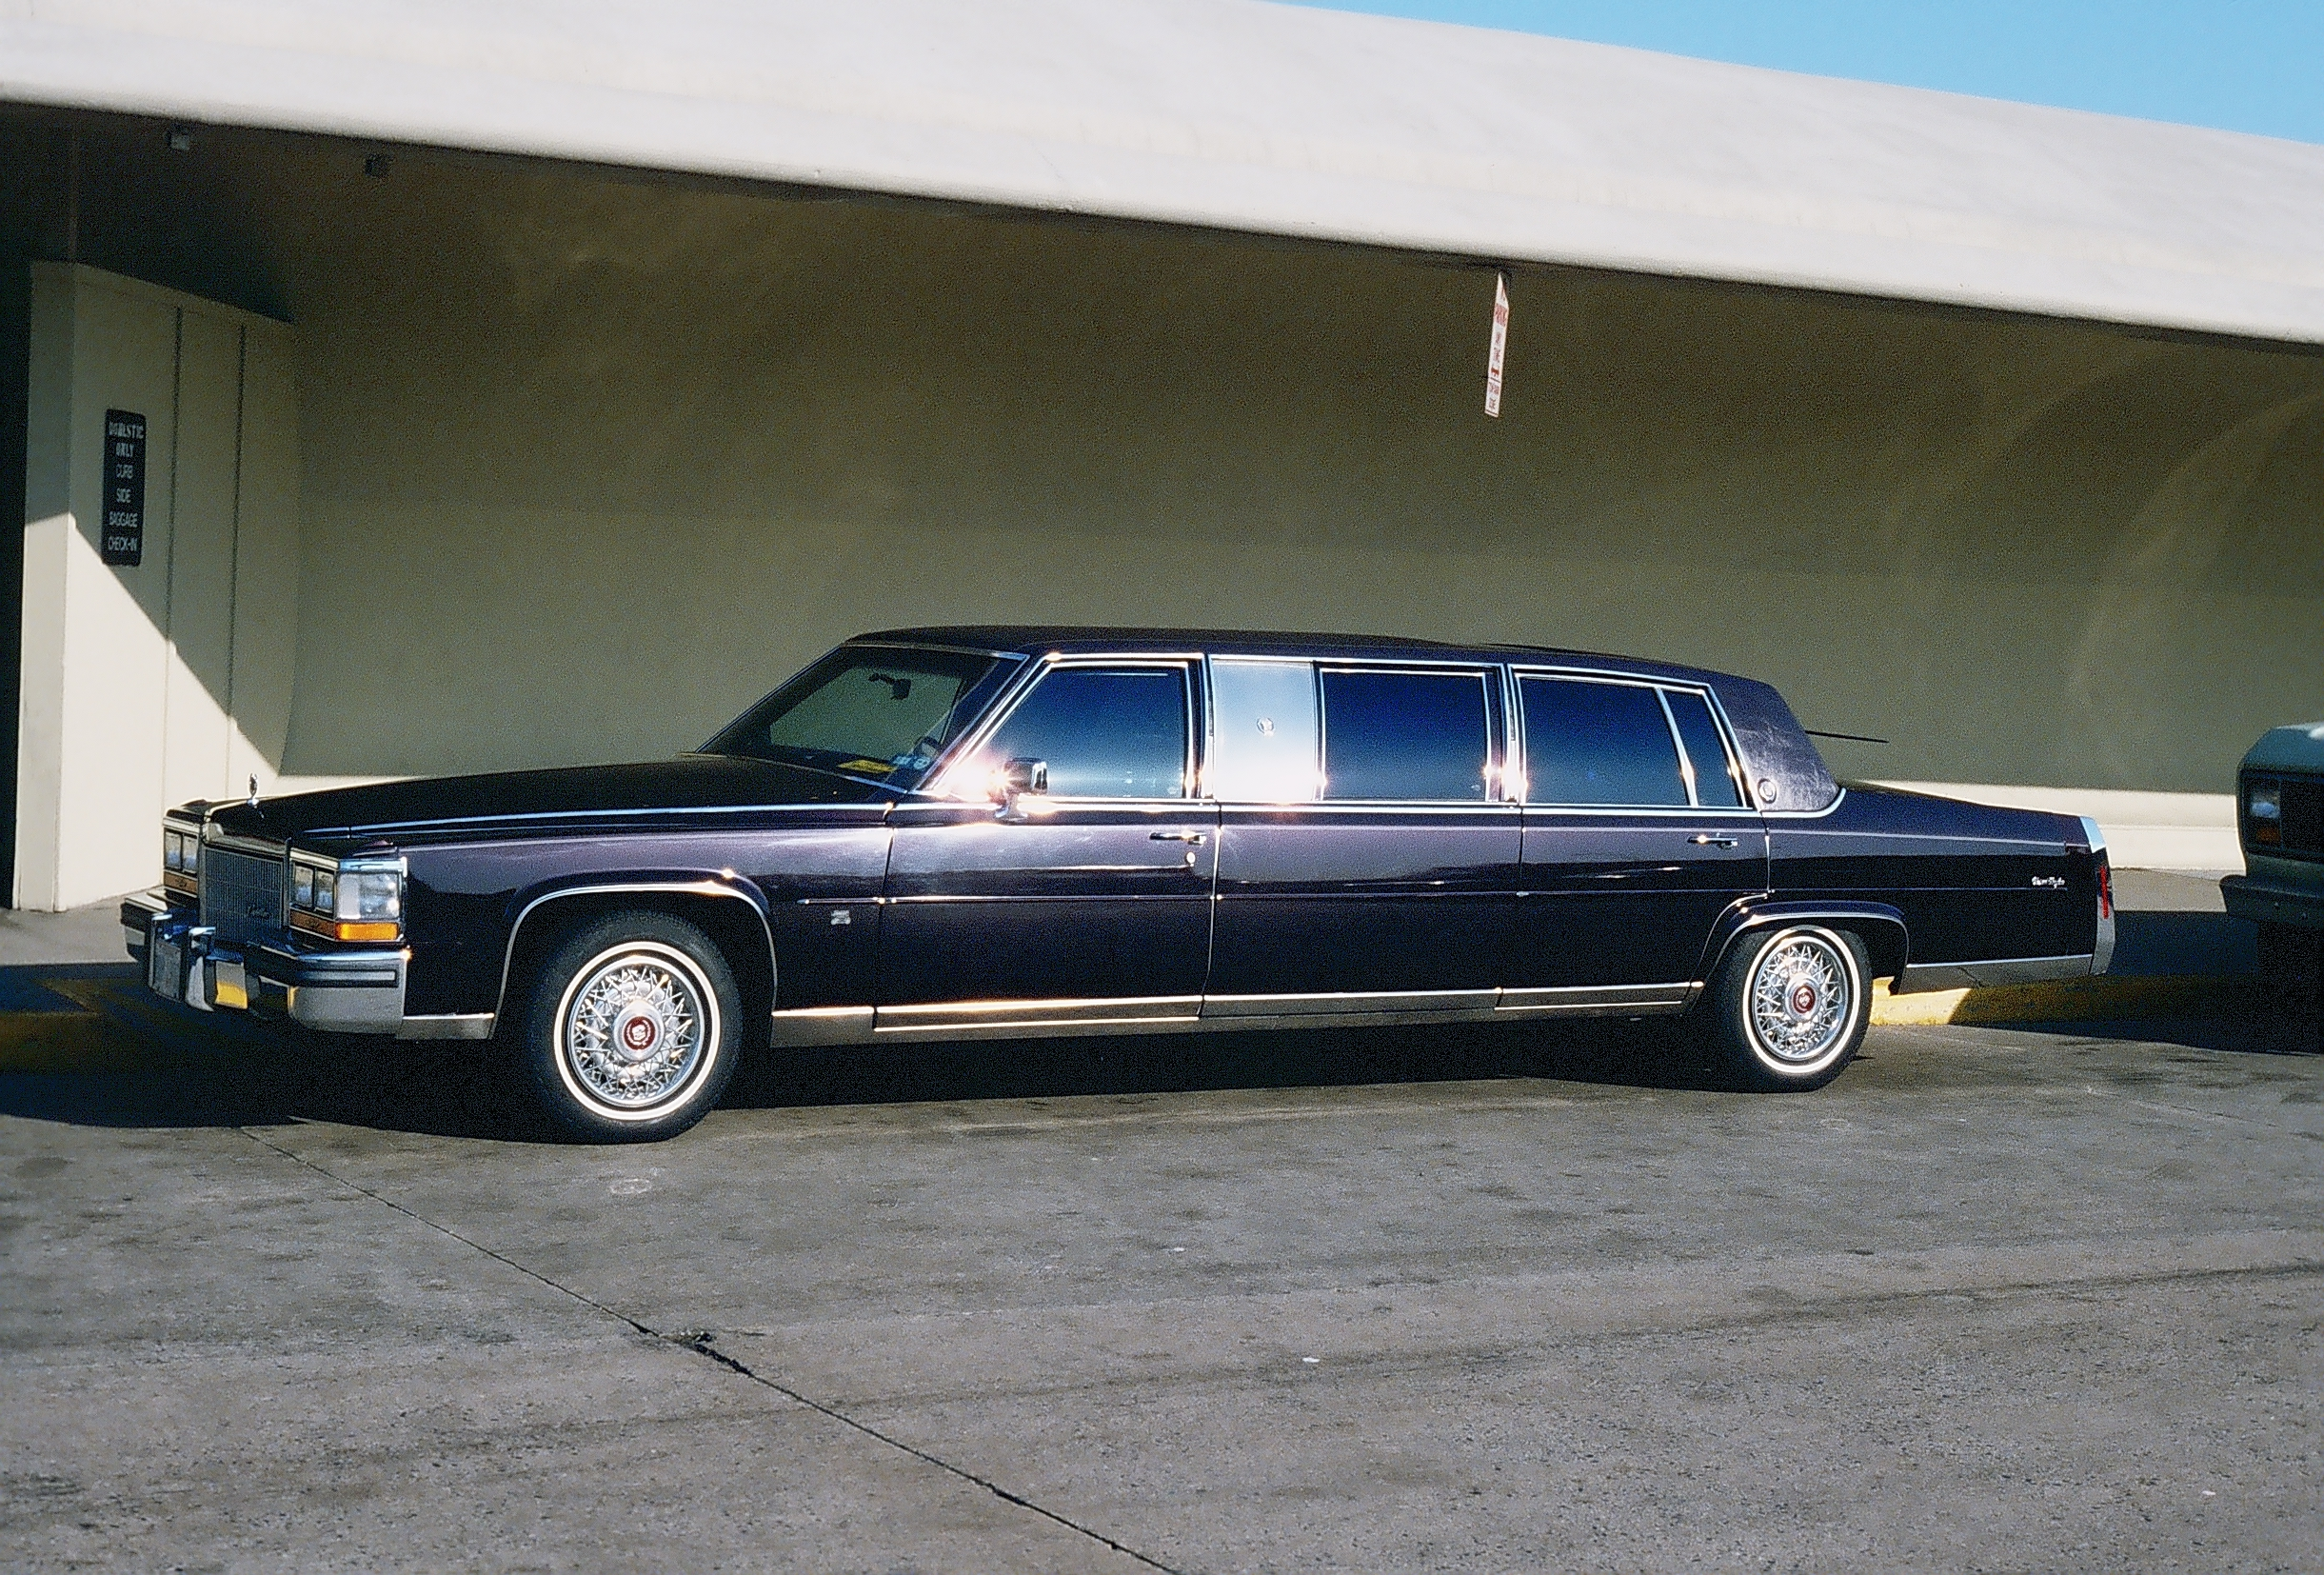 series brougham this year motors collectible is listing exotic vehicle highly classic fleetwood big and llc the last cosmopolitan of fully cadillac loaded dsc sale for